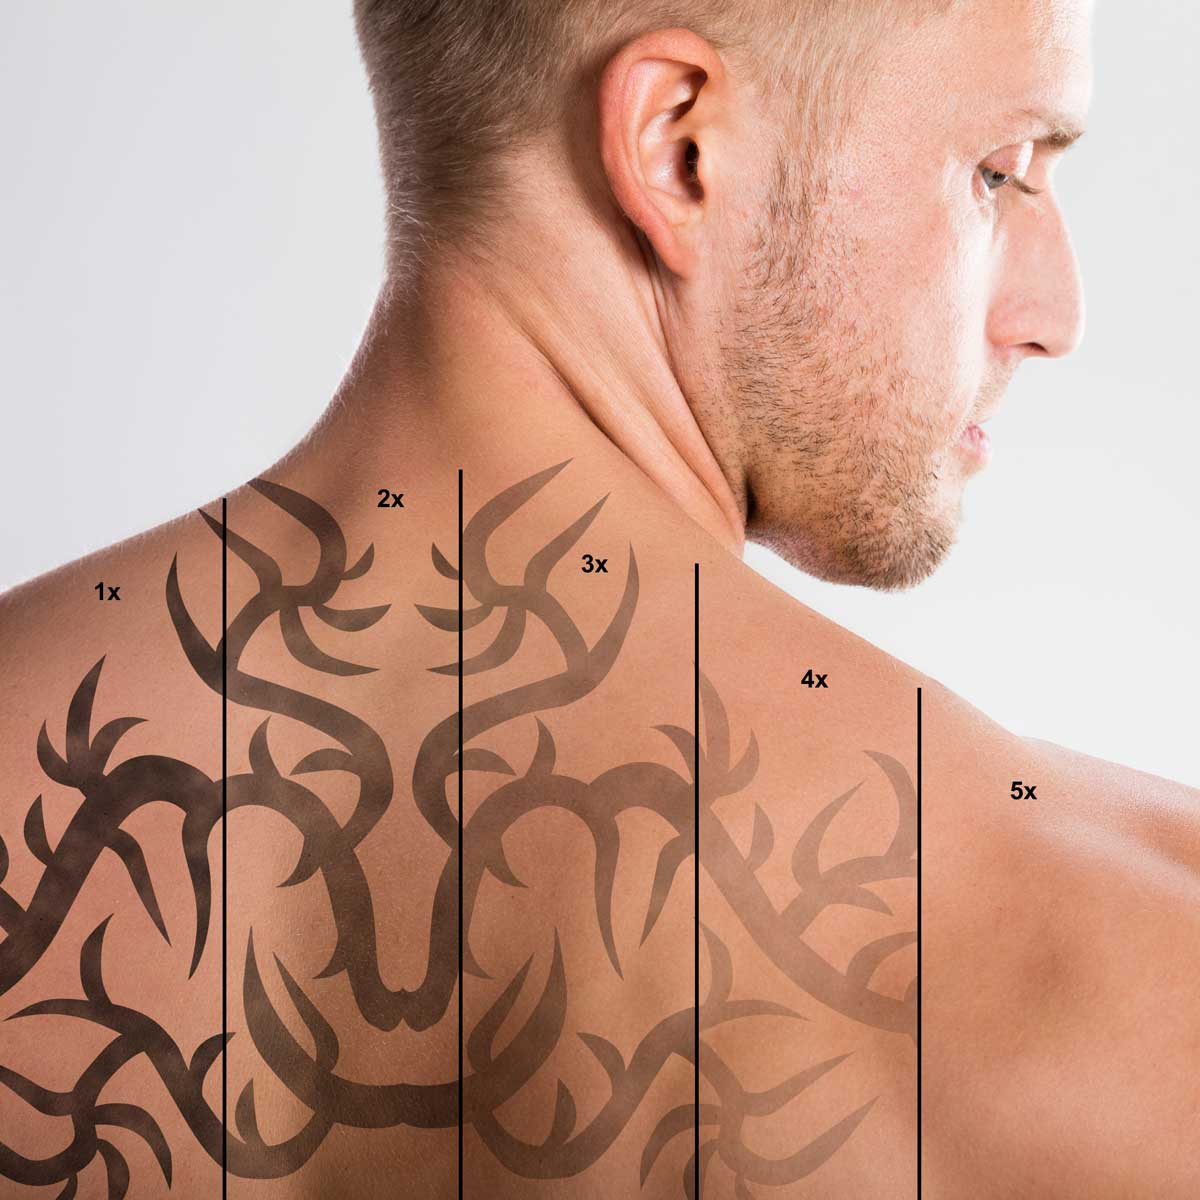 laser treatment essex southend on sea body aesthetics tattoo removal